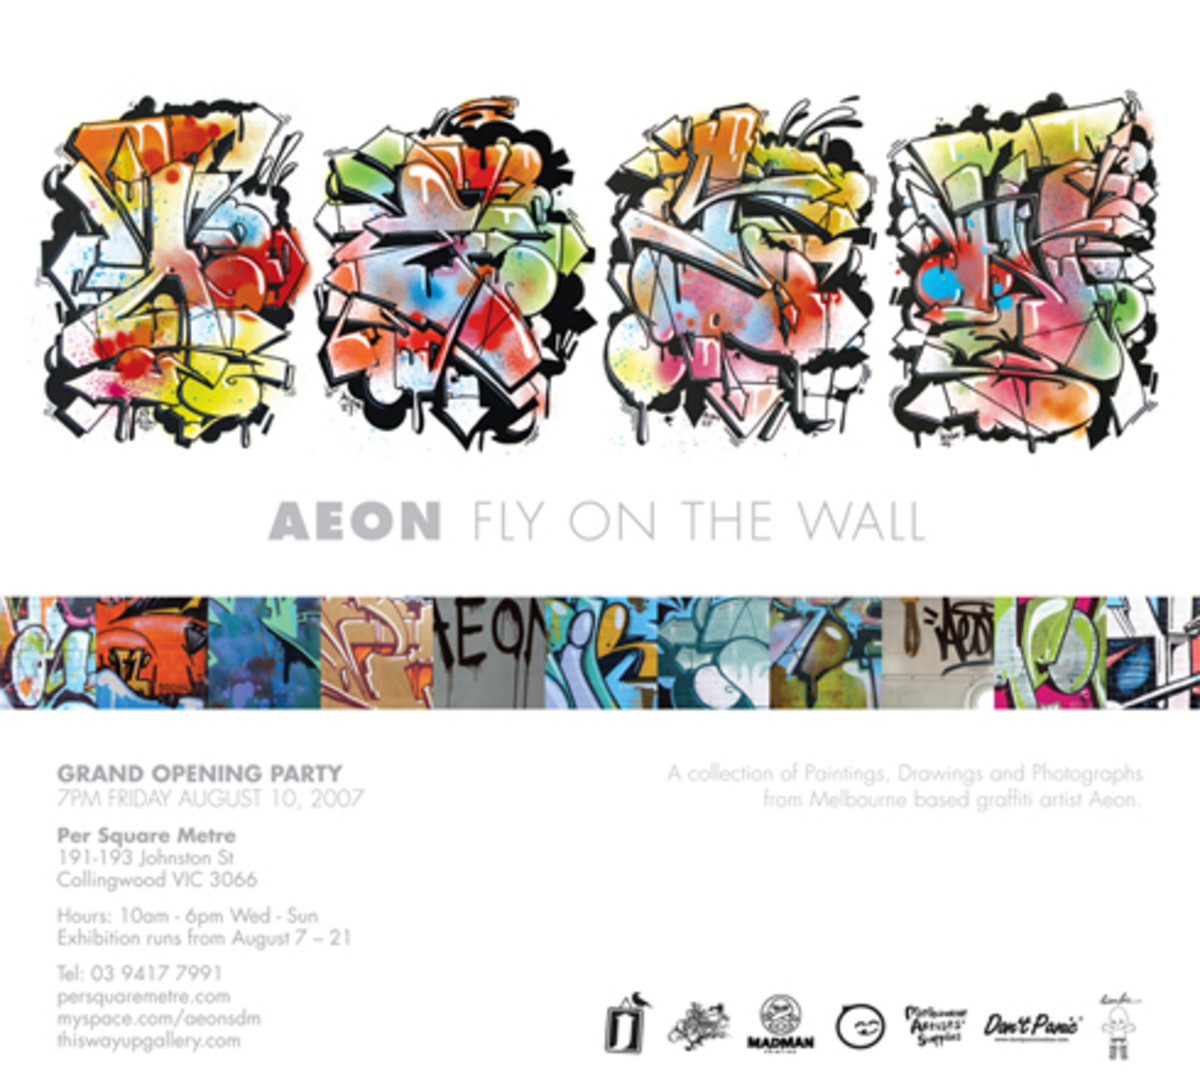 Aeon - Fly On The Wall Exhibition - 0